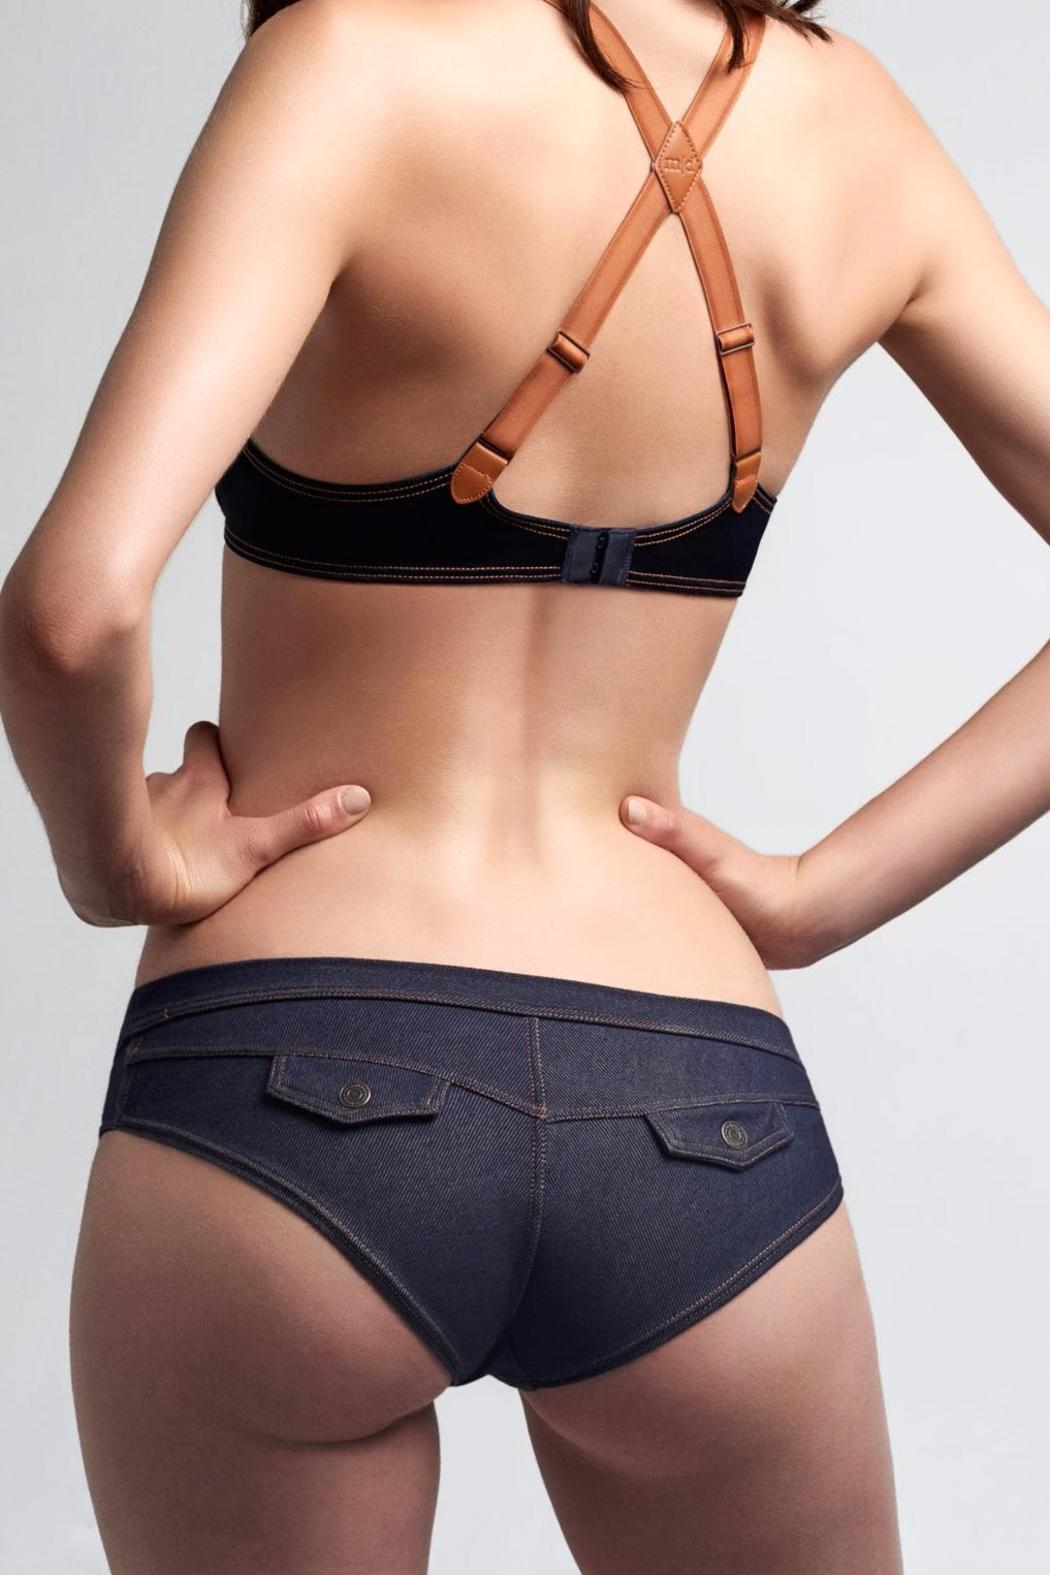 marlies dekkers Denim Brazilian Briefs - Front Cropped Image